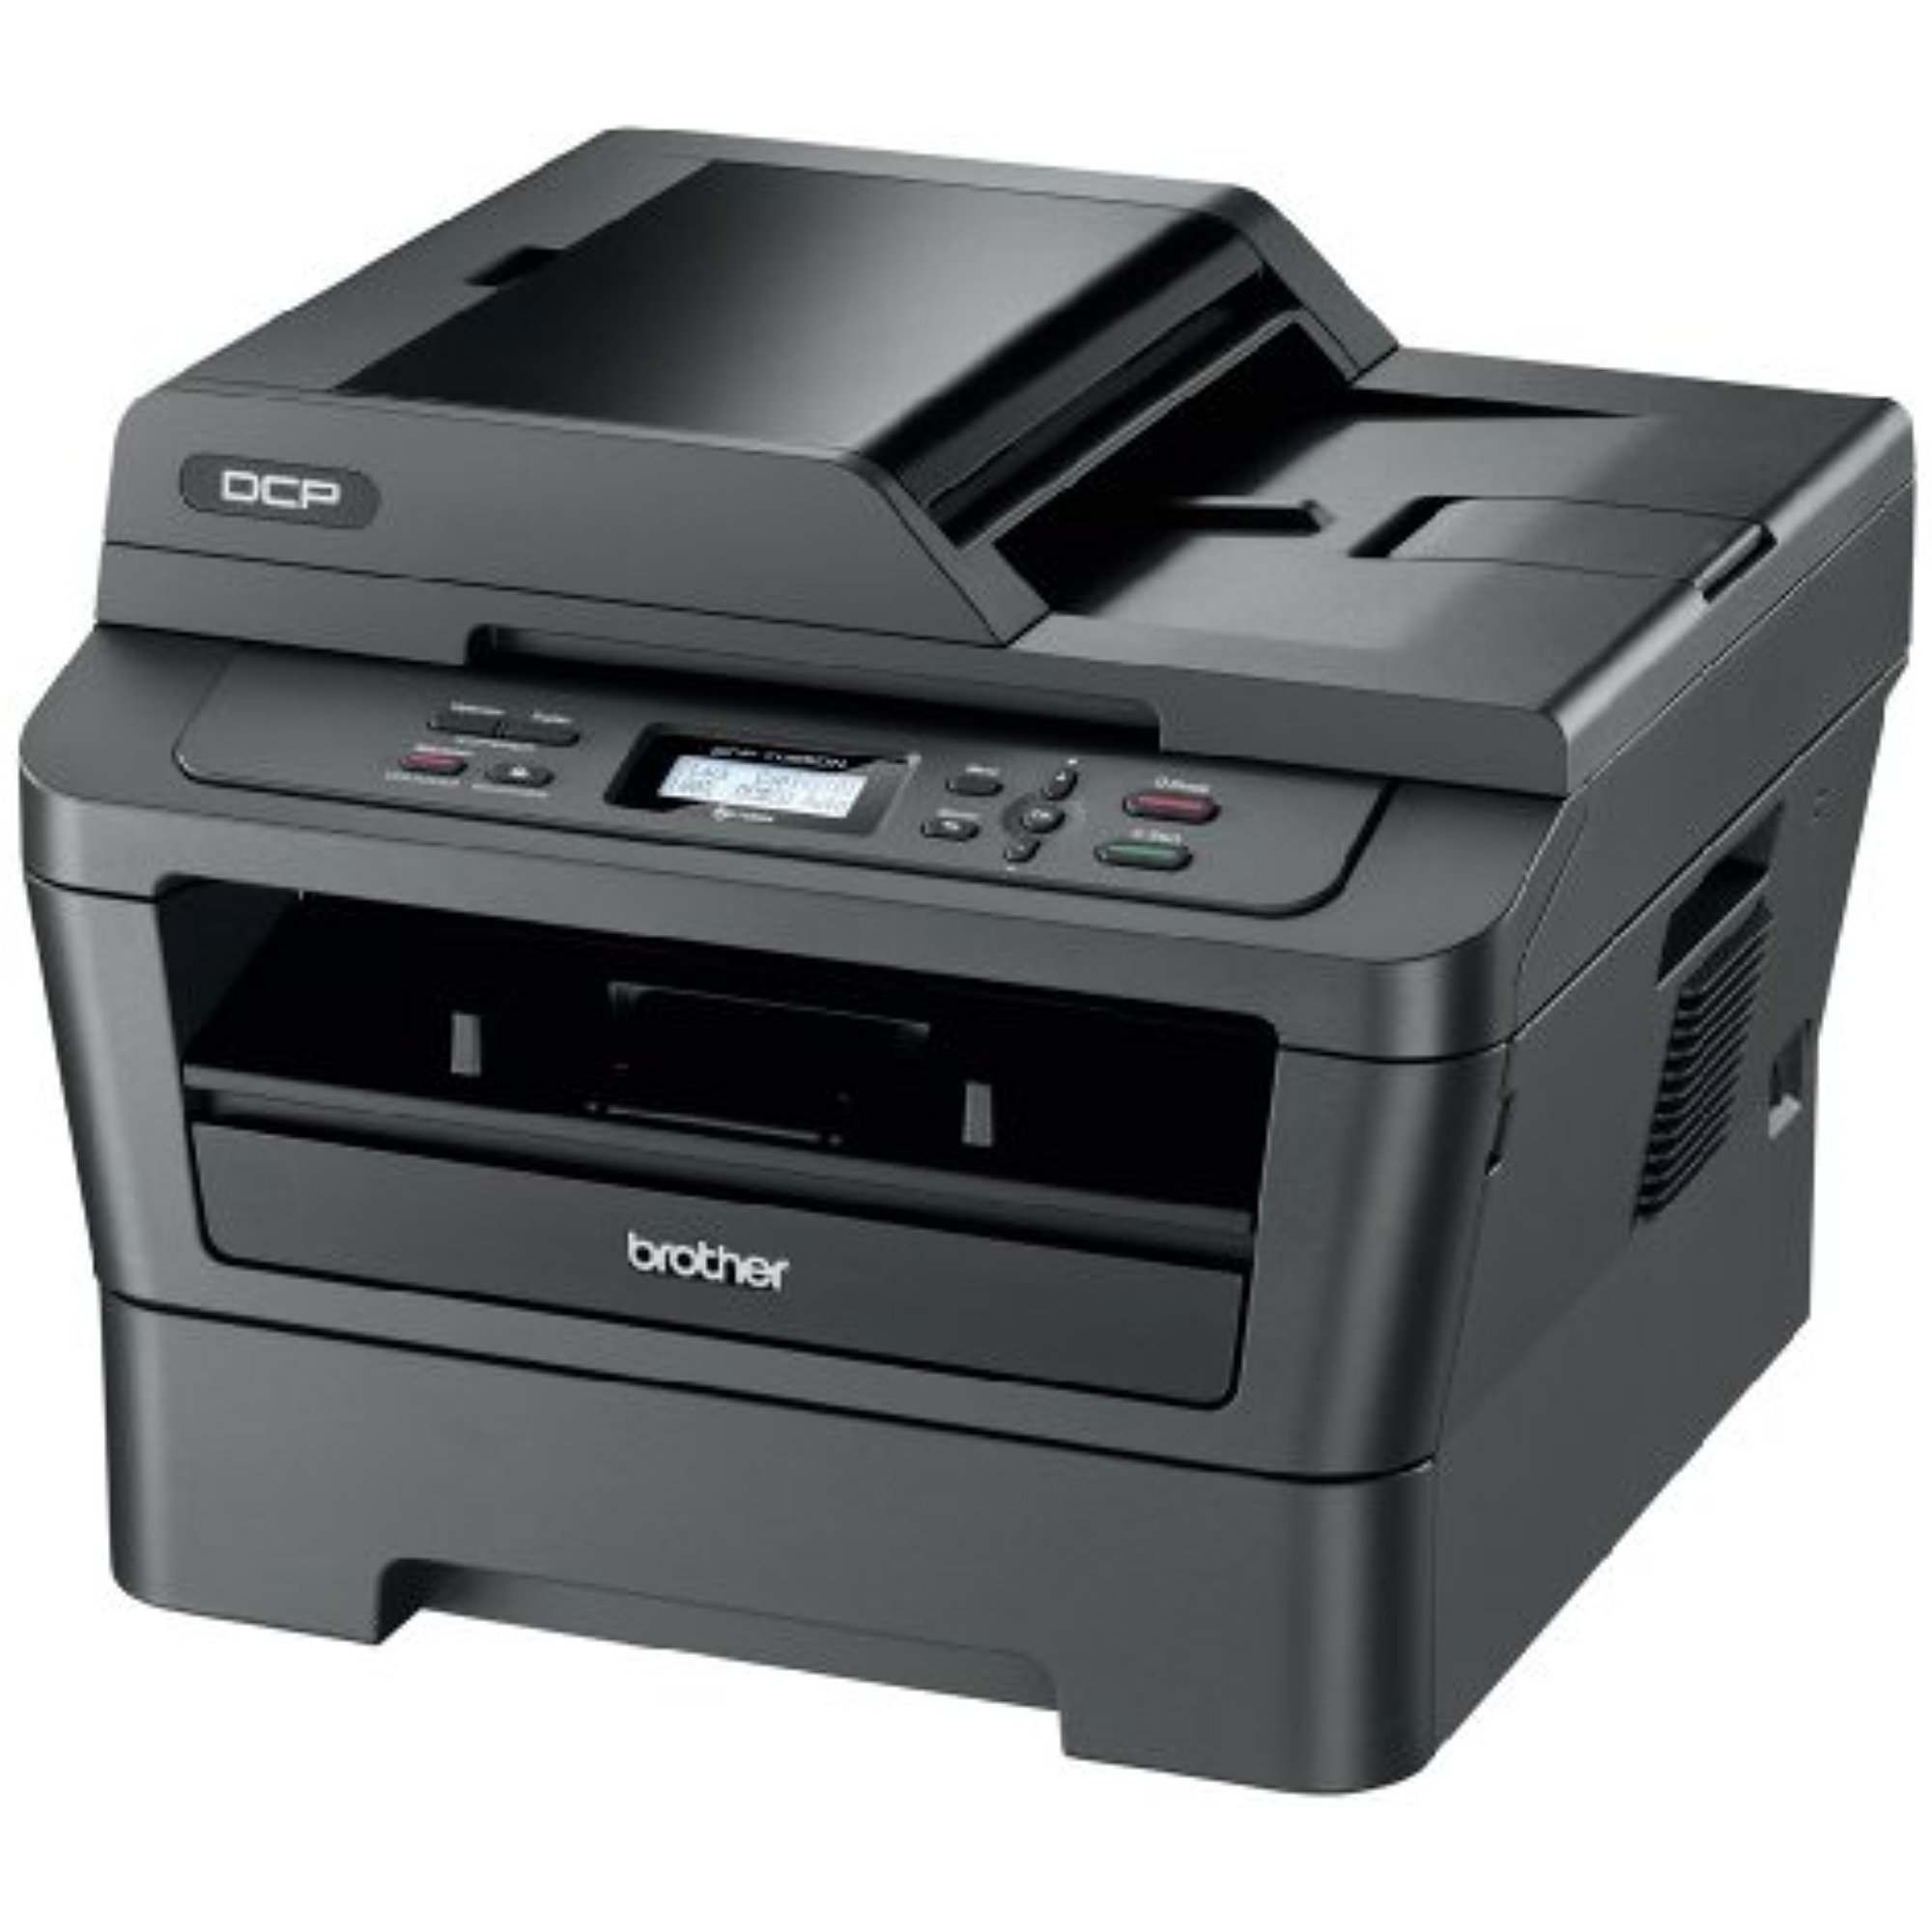 Refurbished Brother DCP-7065DN All-in-One Multifunction Laser Printer